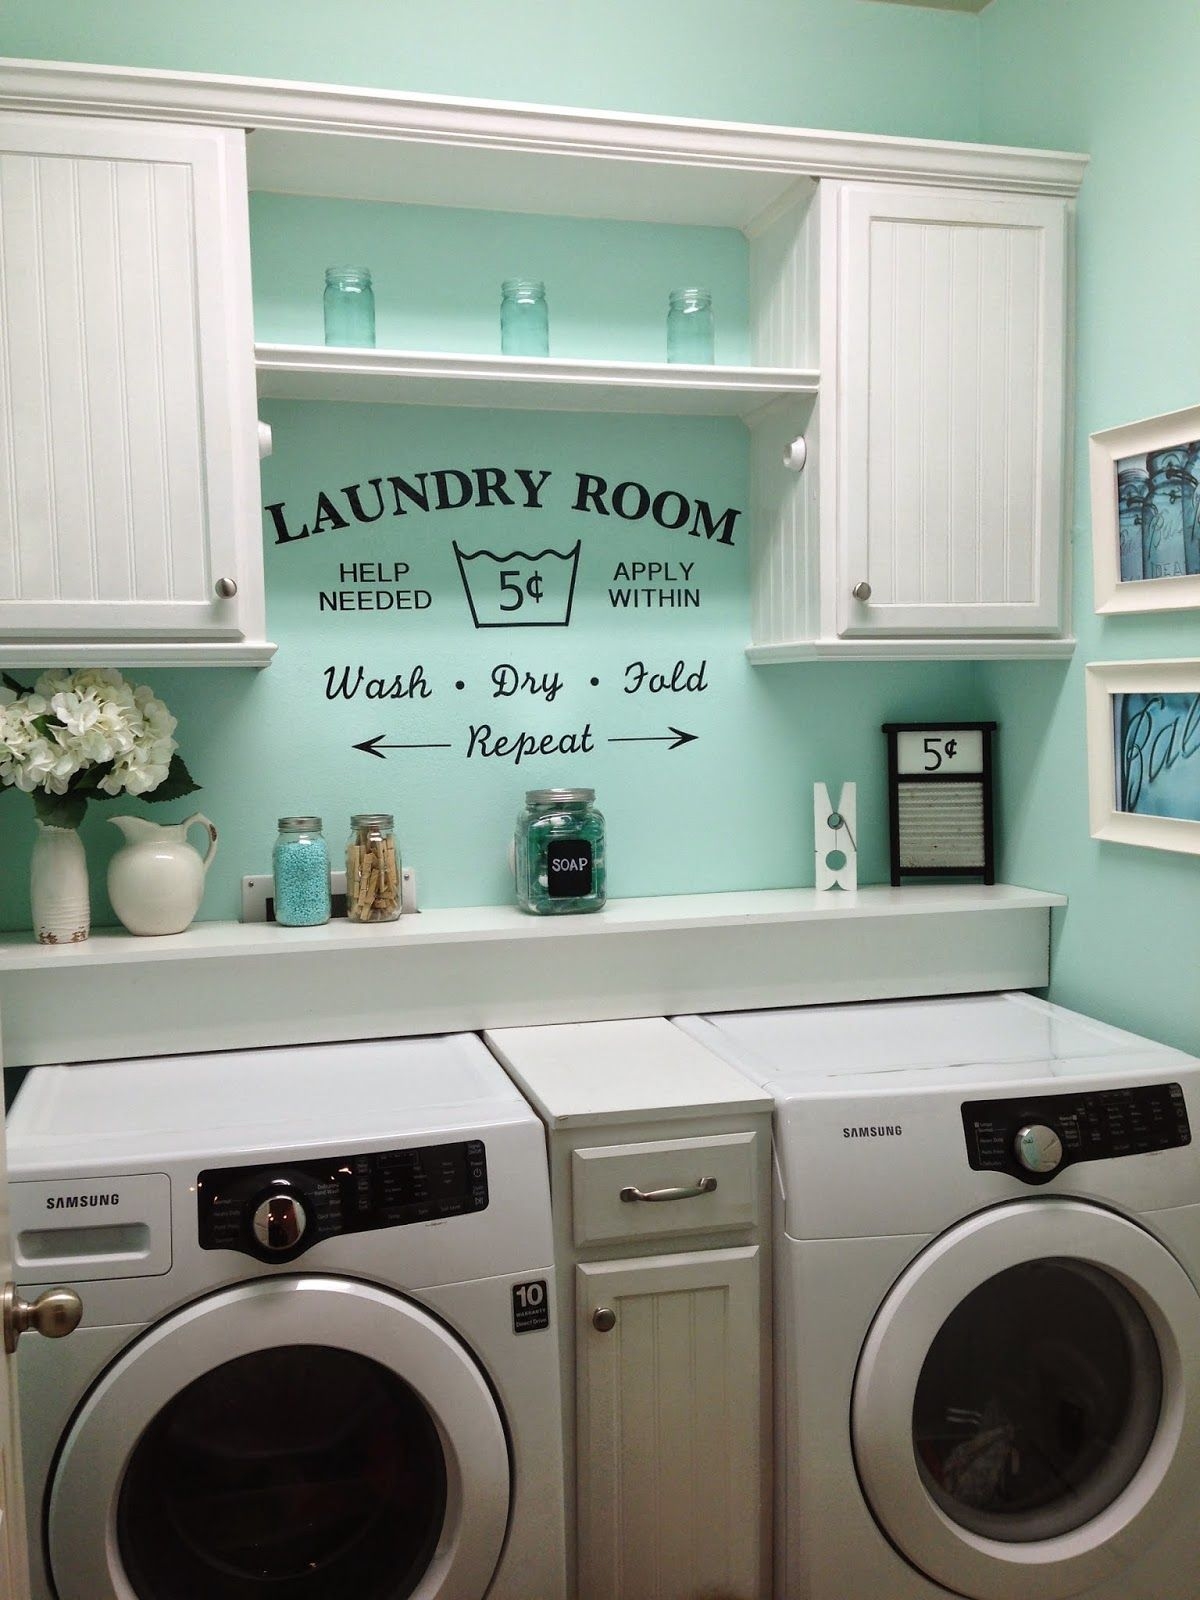 Very Small Laundry Room Rustic Shabby Chic Laundry Room Vintage Vinyl Decal Small Laundry